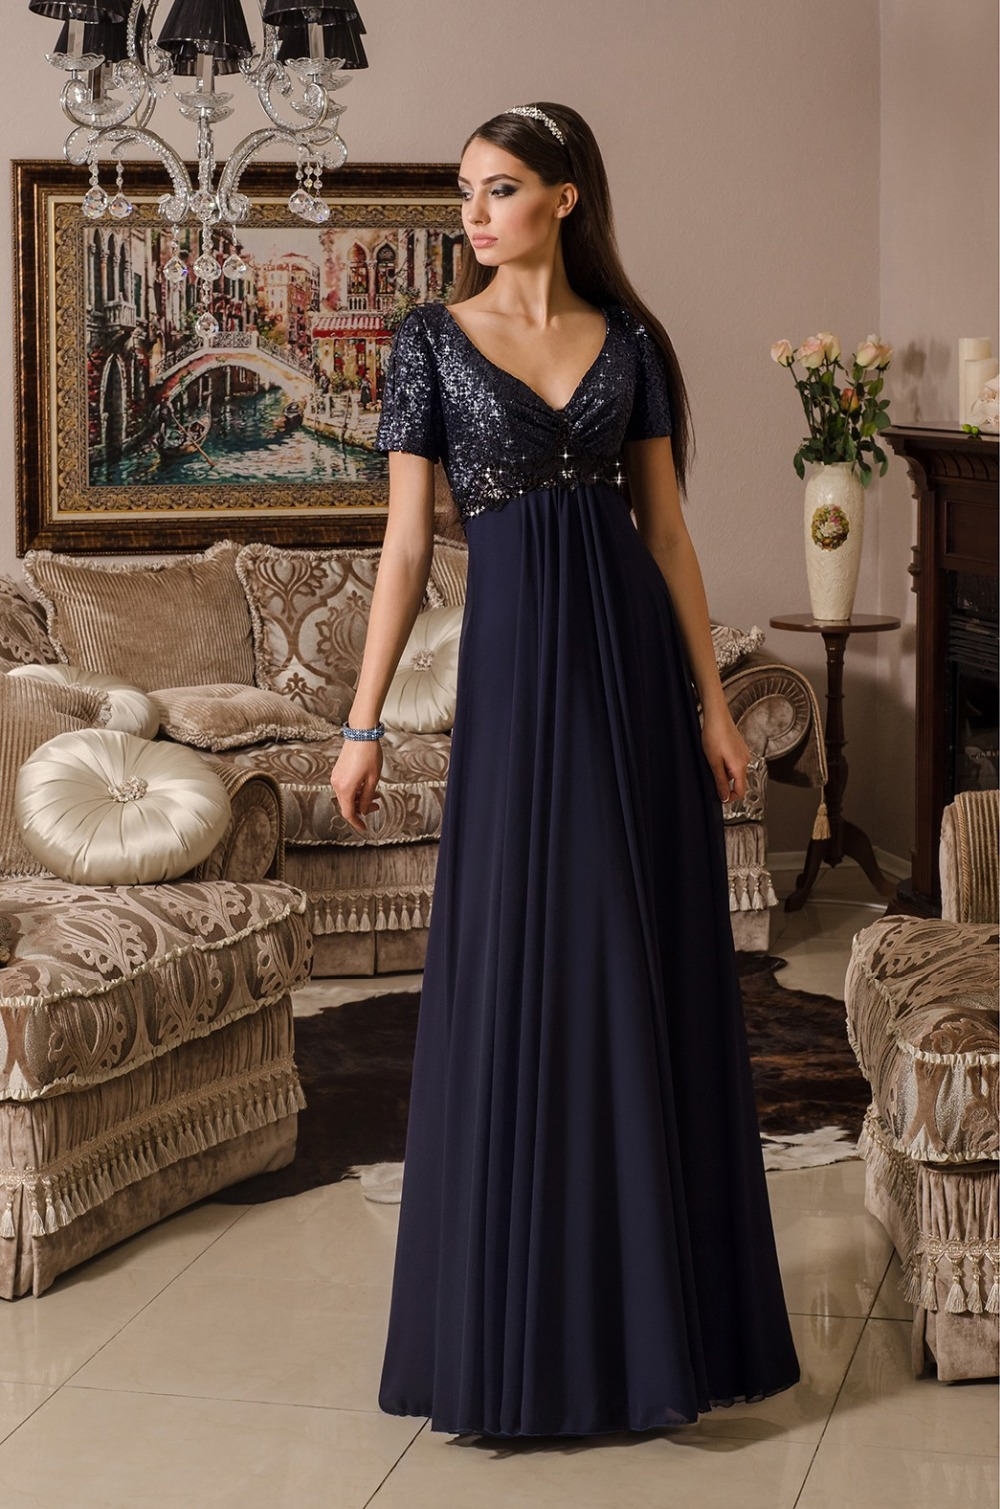 Akd-05 Plus Size Formal Party Evening Gown 2015 Navy Blue ...